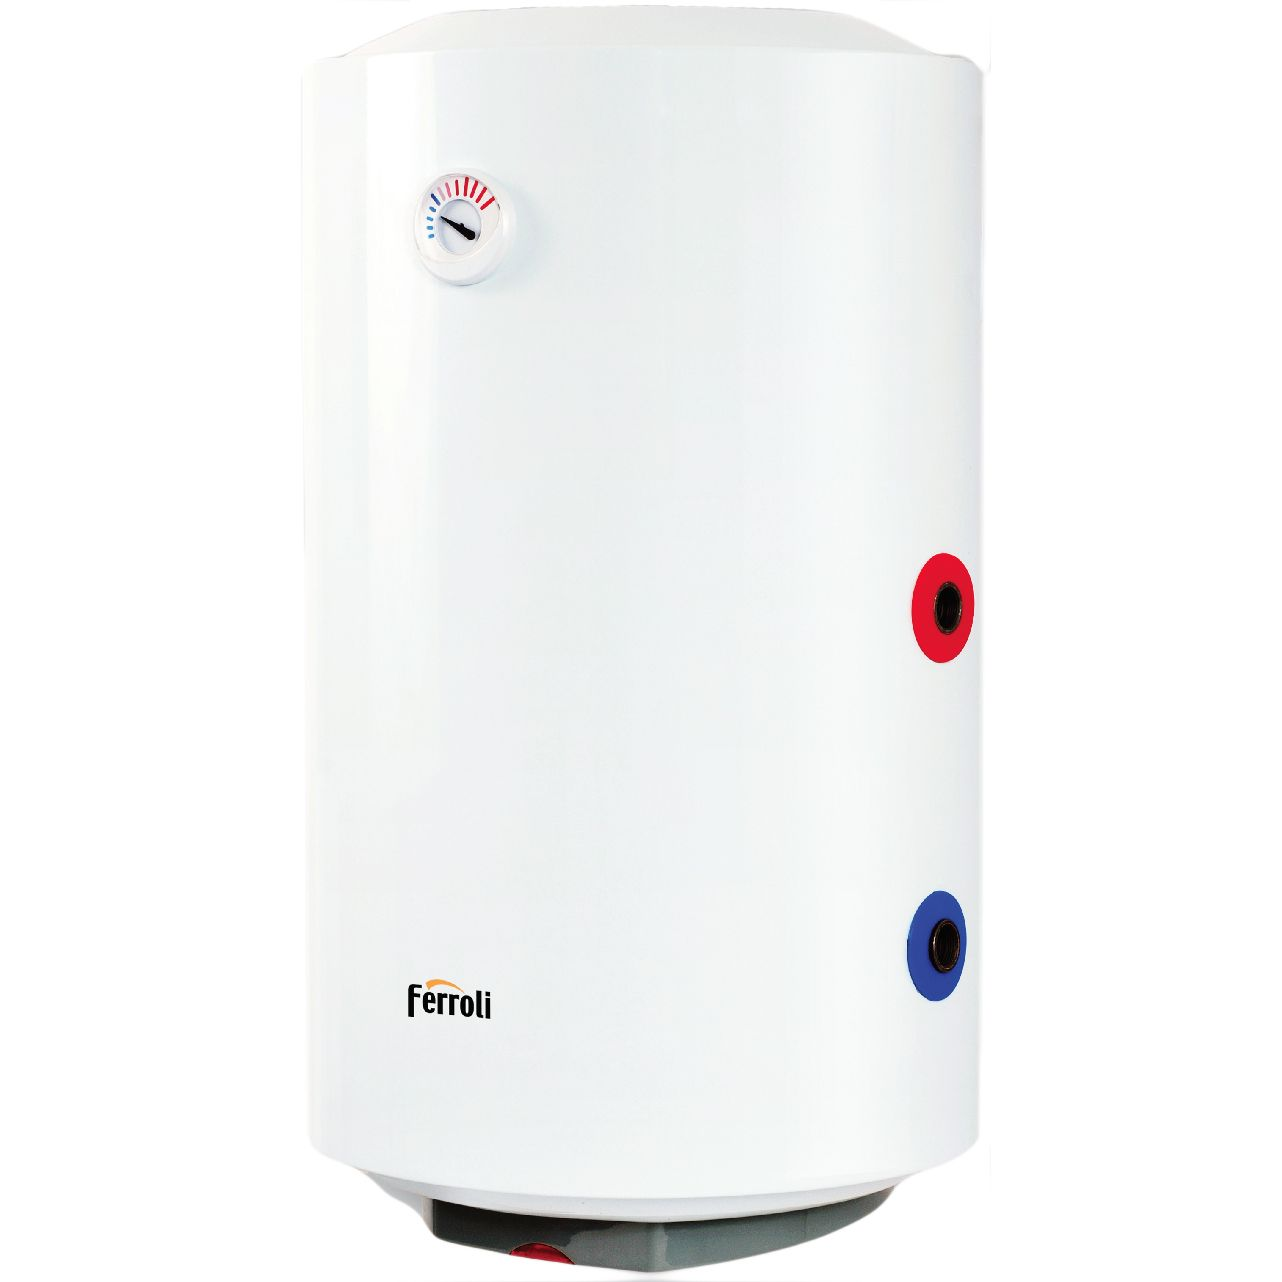 Boiler termoelectric cu serpentina Ferroli Power Thermo 150V, 1500 W, 150 l, 0.8 Mpa, Alb imagine fornello.ro